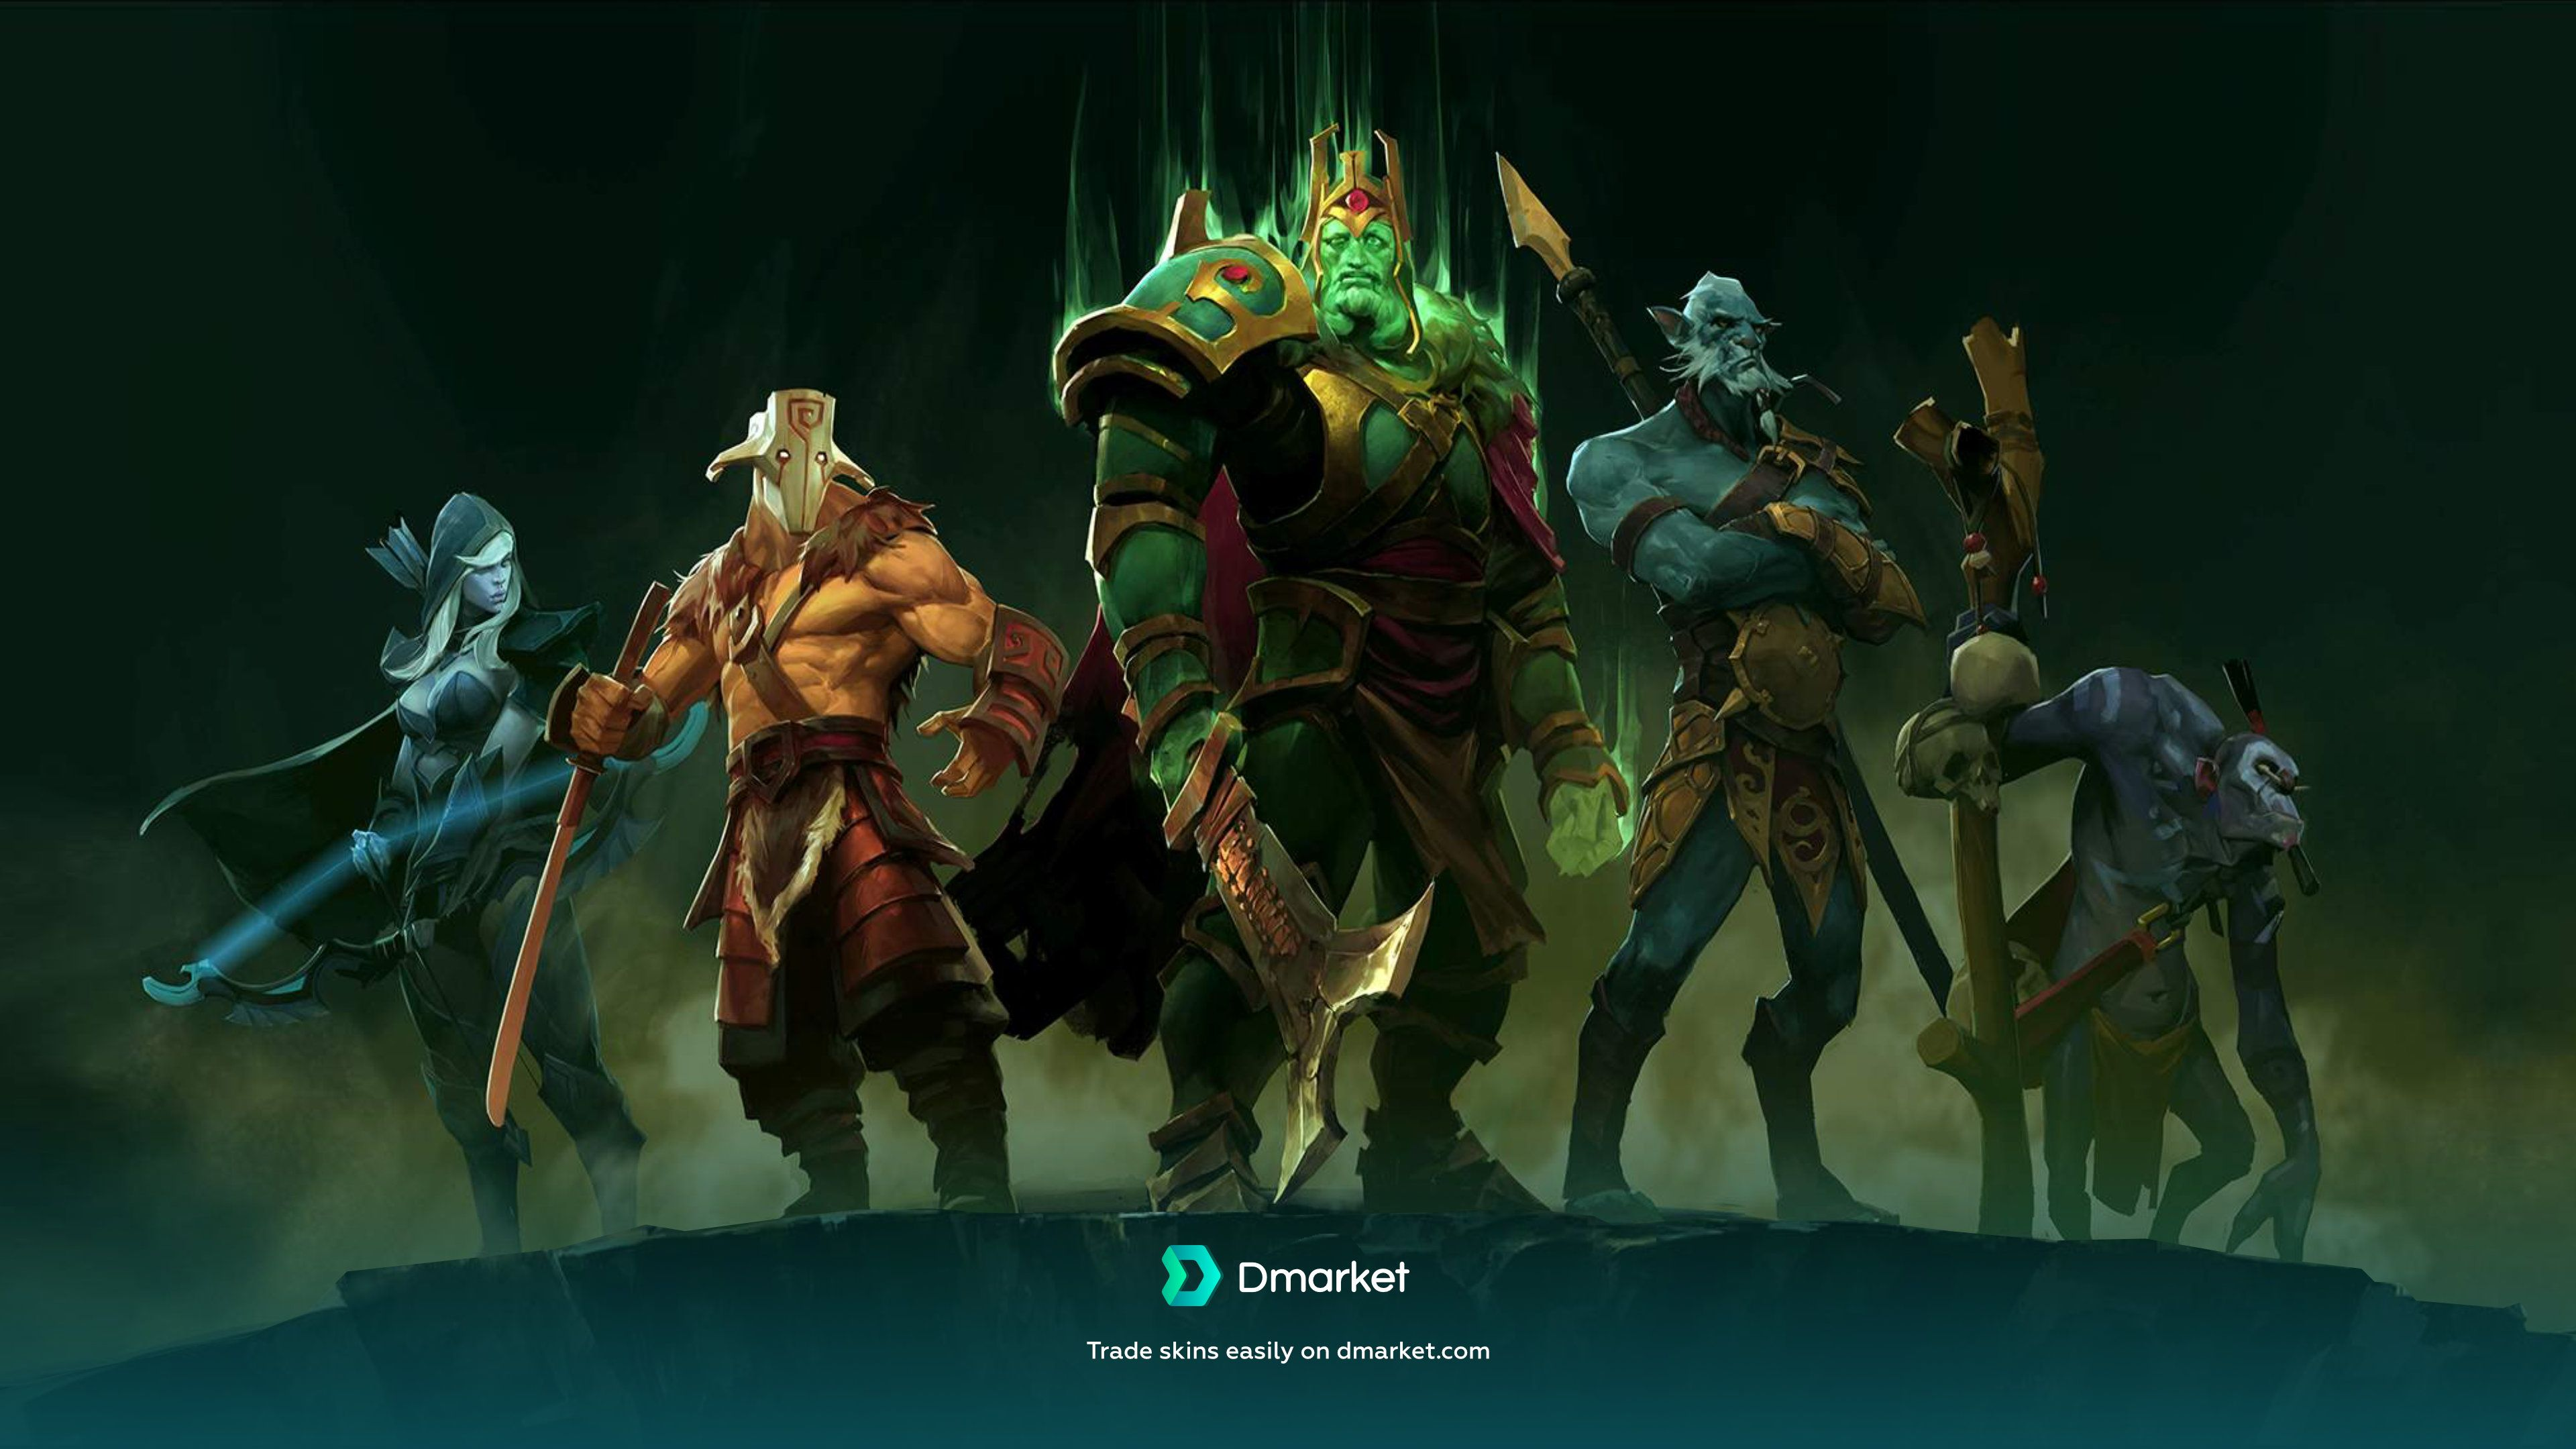 Dota 2 Wallpaper Dota 2 Wallpaper Dota 2 Wallpapers Hd Character Wallpaper